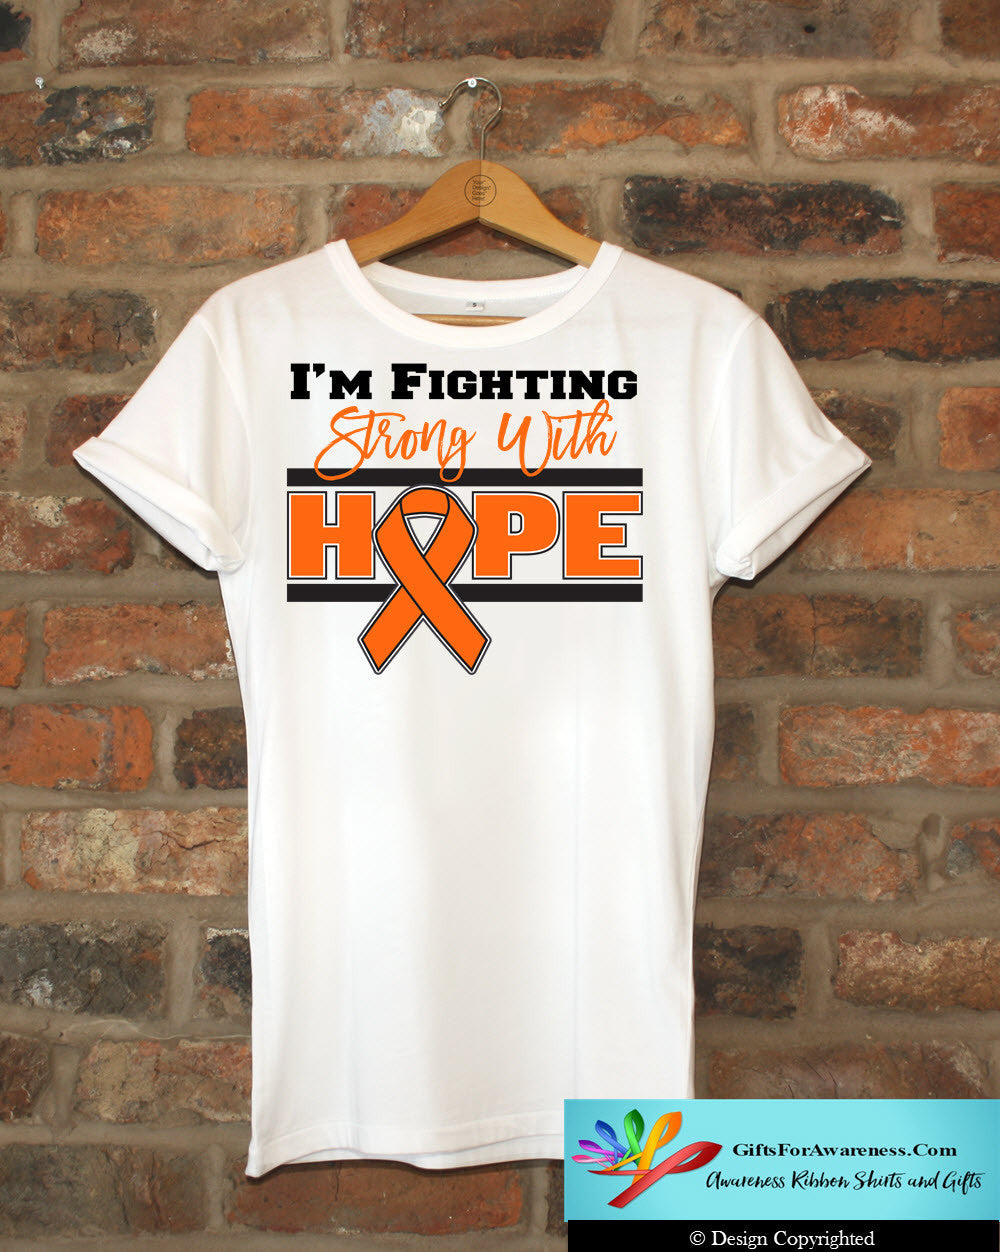 Kidney Cancer I'm Fighting Strong With Hope Shirts - GiftsForAwareness